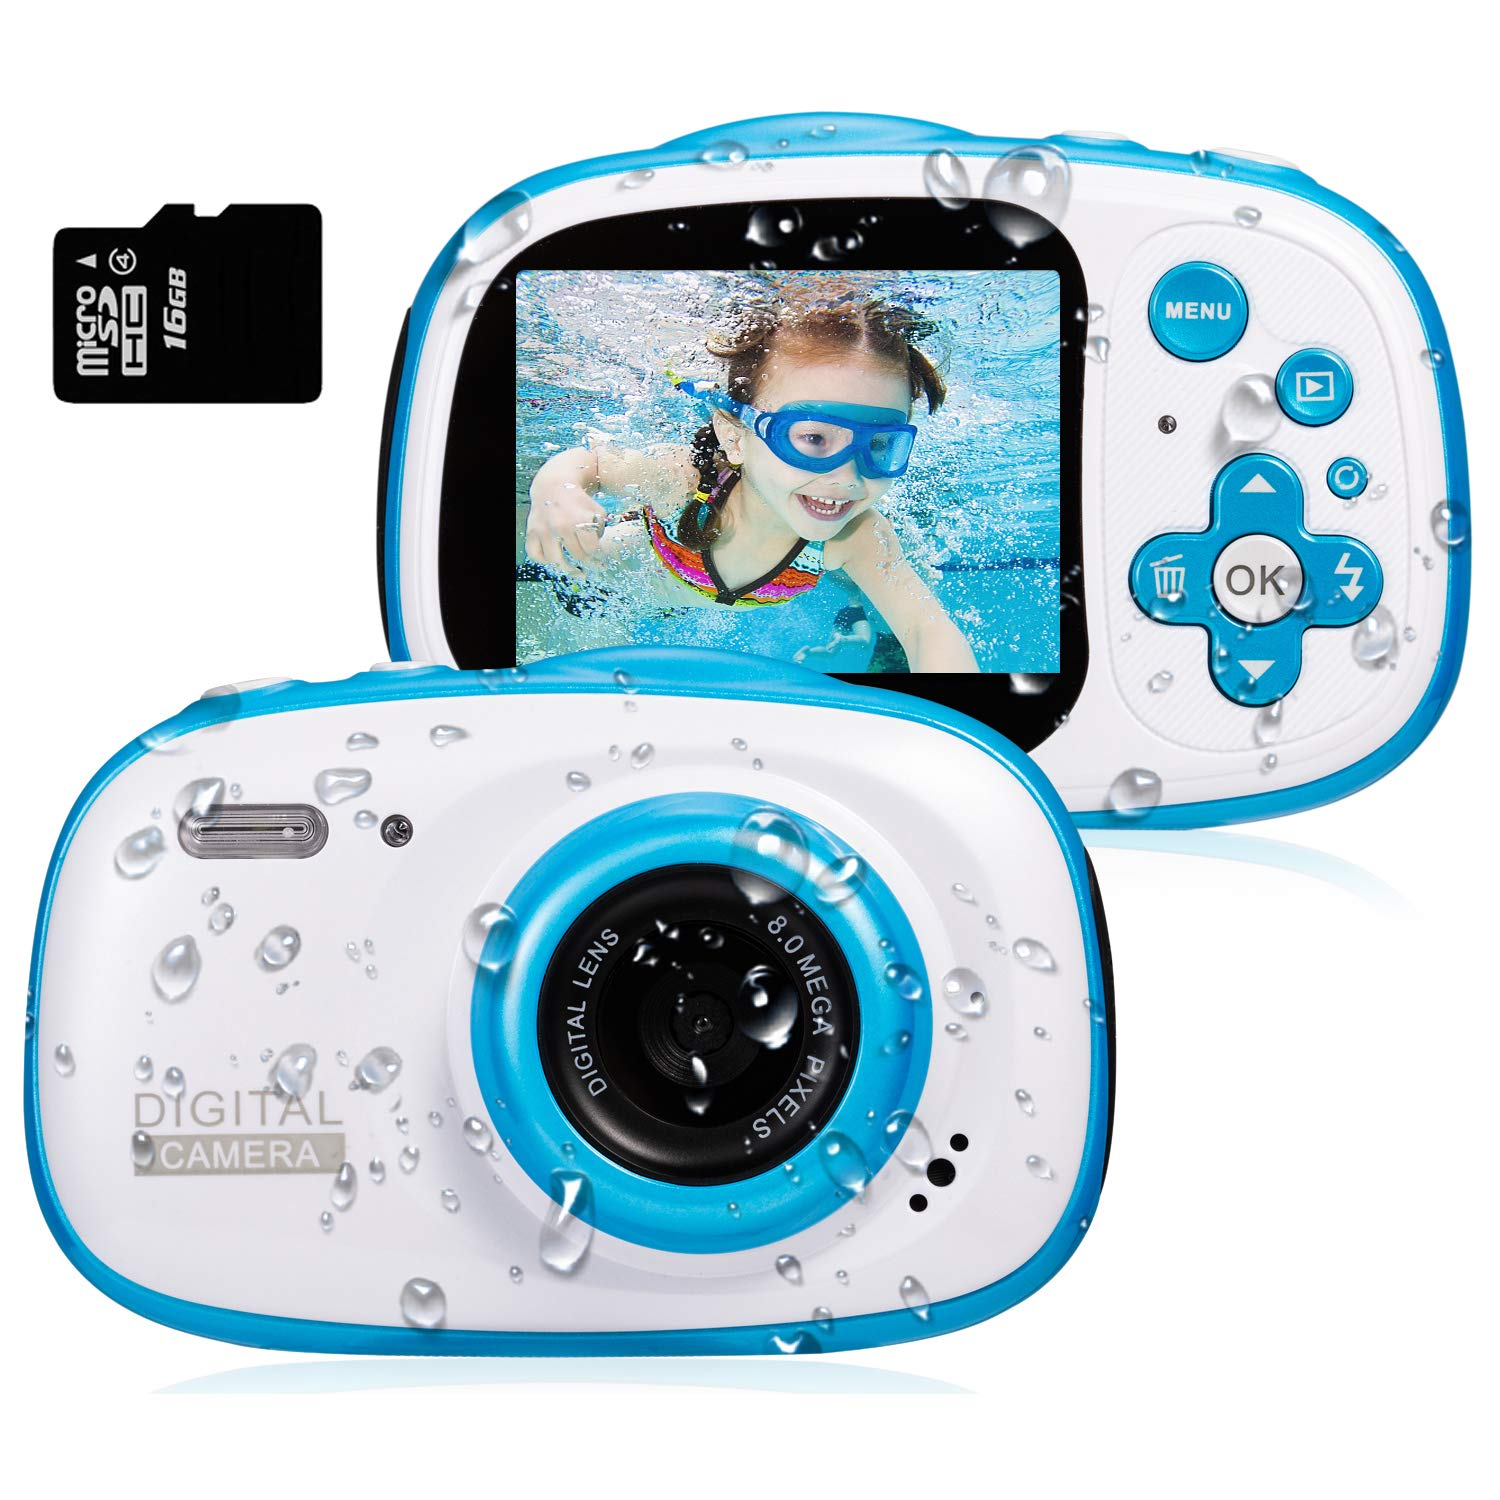 Dessports Toy Camera Waterproof HD Video Cameras for Kids Digital Camcorder Cute Children's Zoom Camera Birthday Gift for Kids 6-9 for Swimming, Blue (16G Memory Card Included)